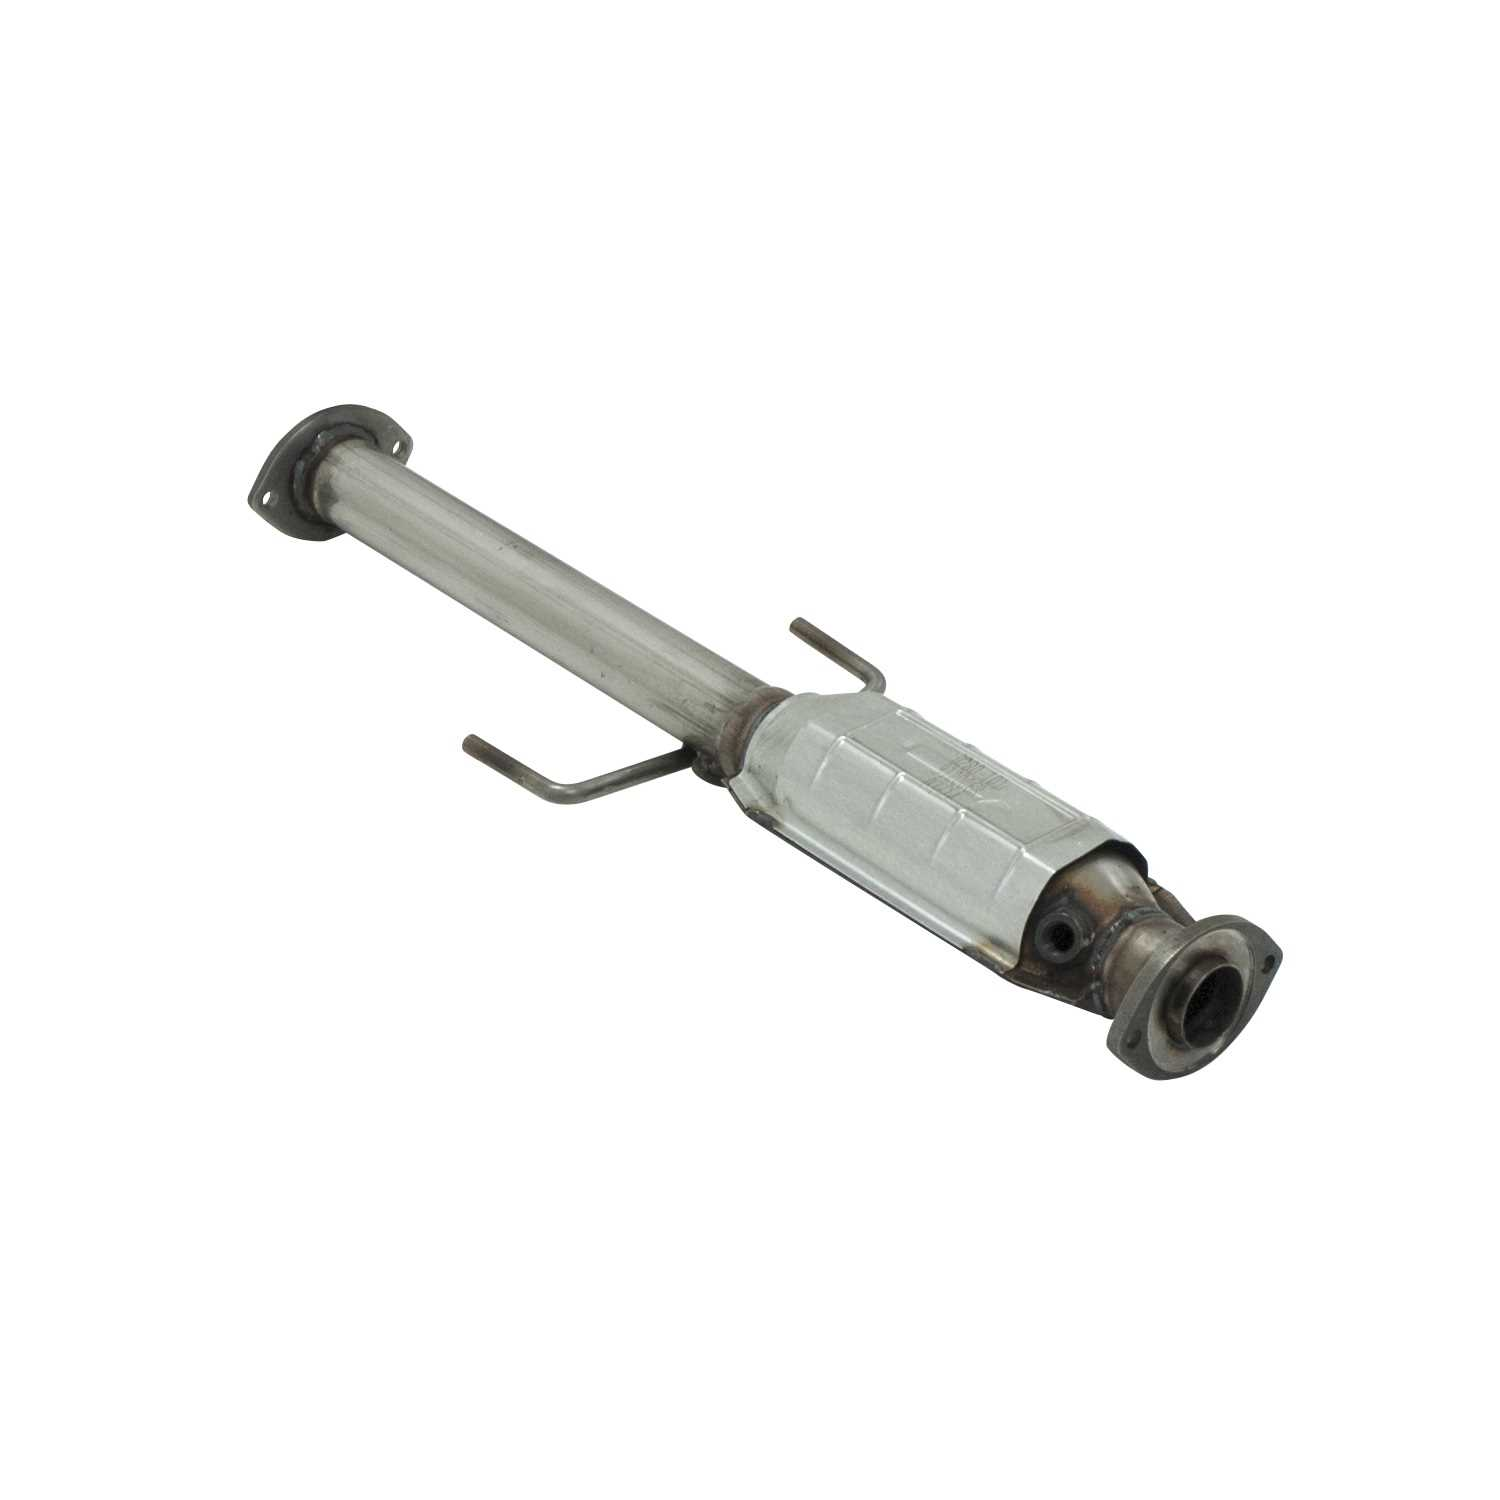 3050014 Flowmaster California Catalytic Converters Direct Fit California Catalytic Converter